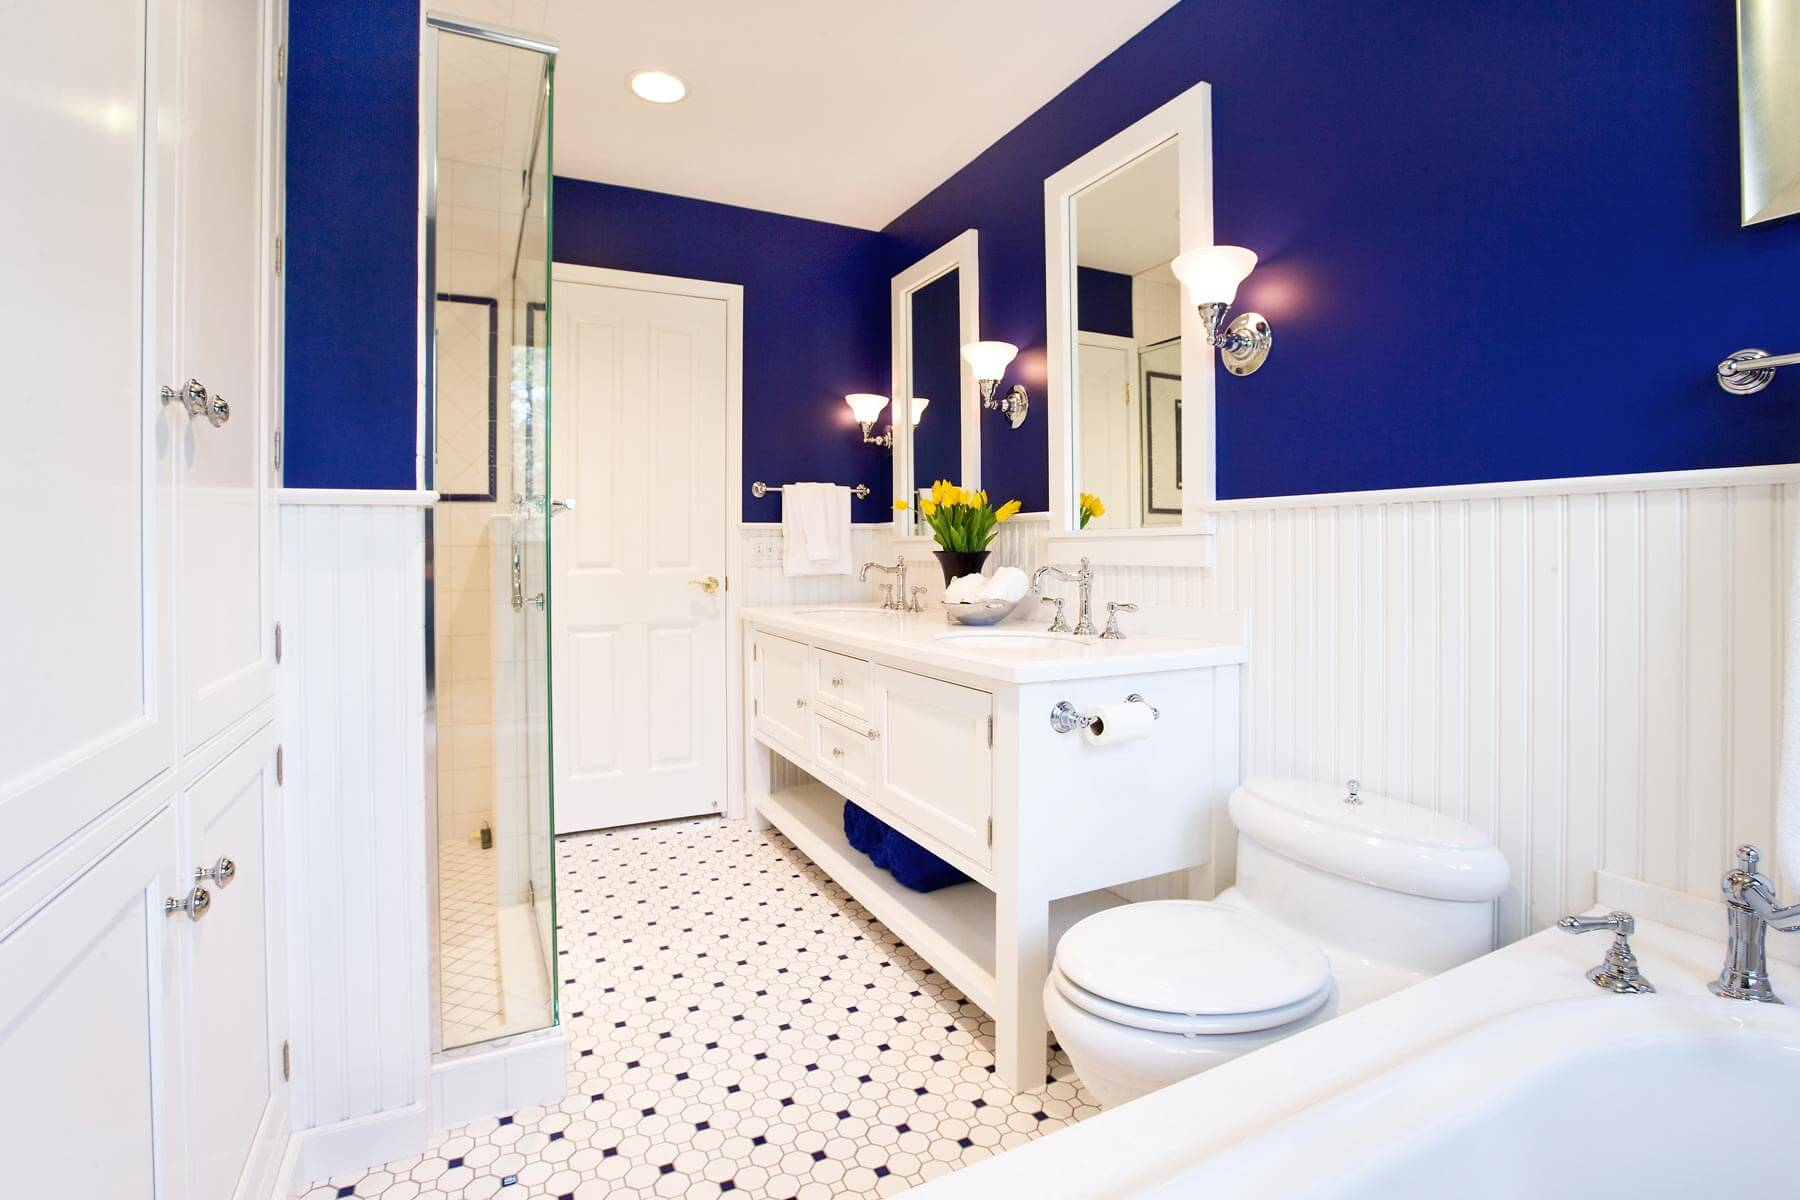 Small Master Bath With A Big Vision, By Drury Design on Small:e_D8Ihxdoce= Restroom Ideas  id=52798